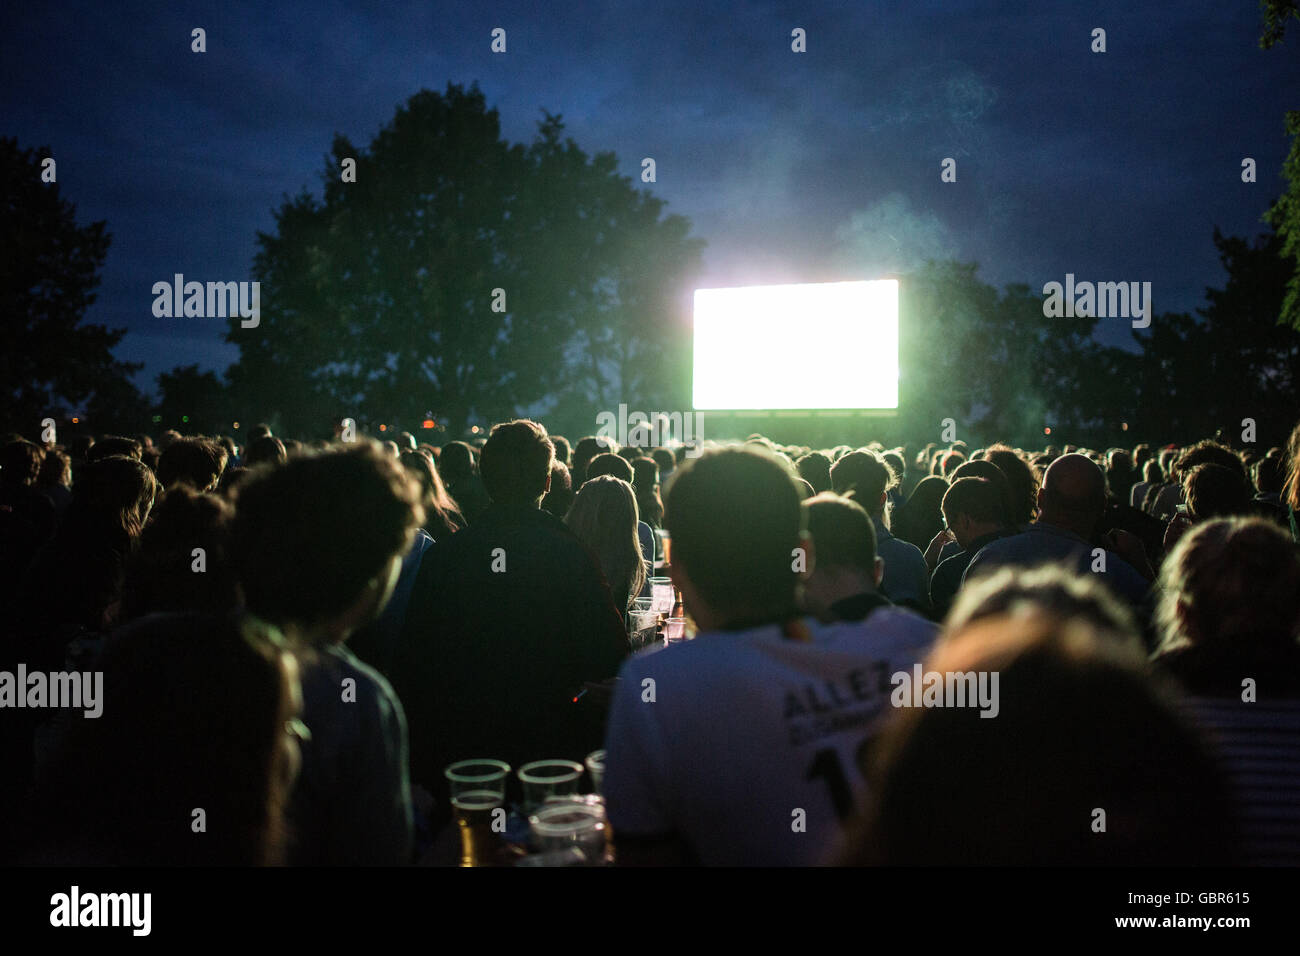 Football supporters at a public viewing of the Euro 2016 semi-final between France and Germany at Tempelhofer Feld - Stock Image